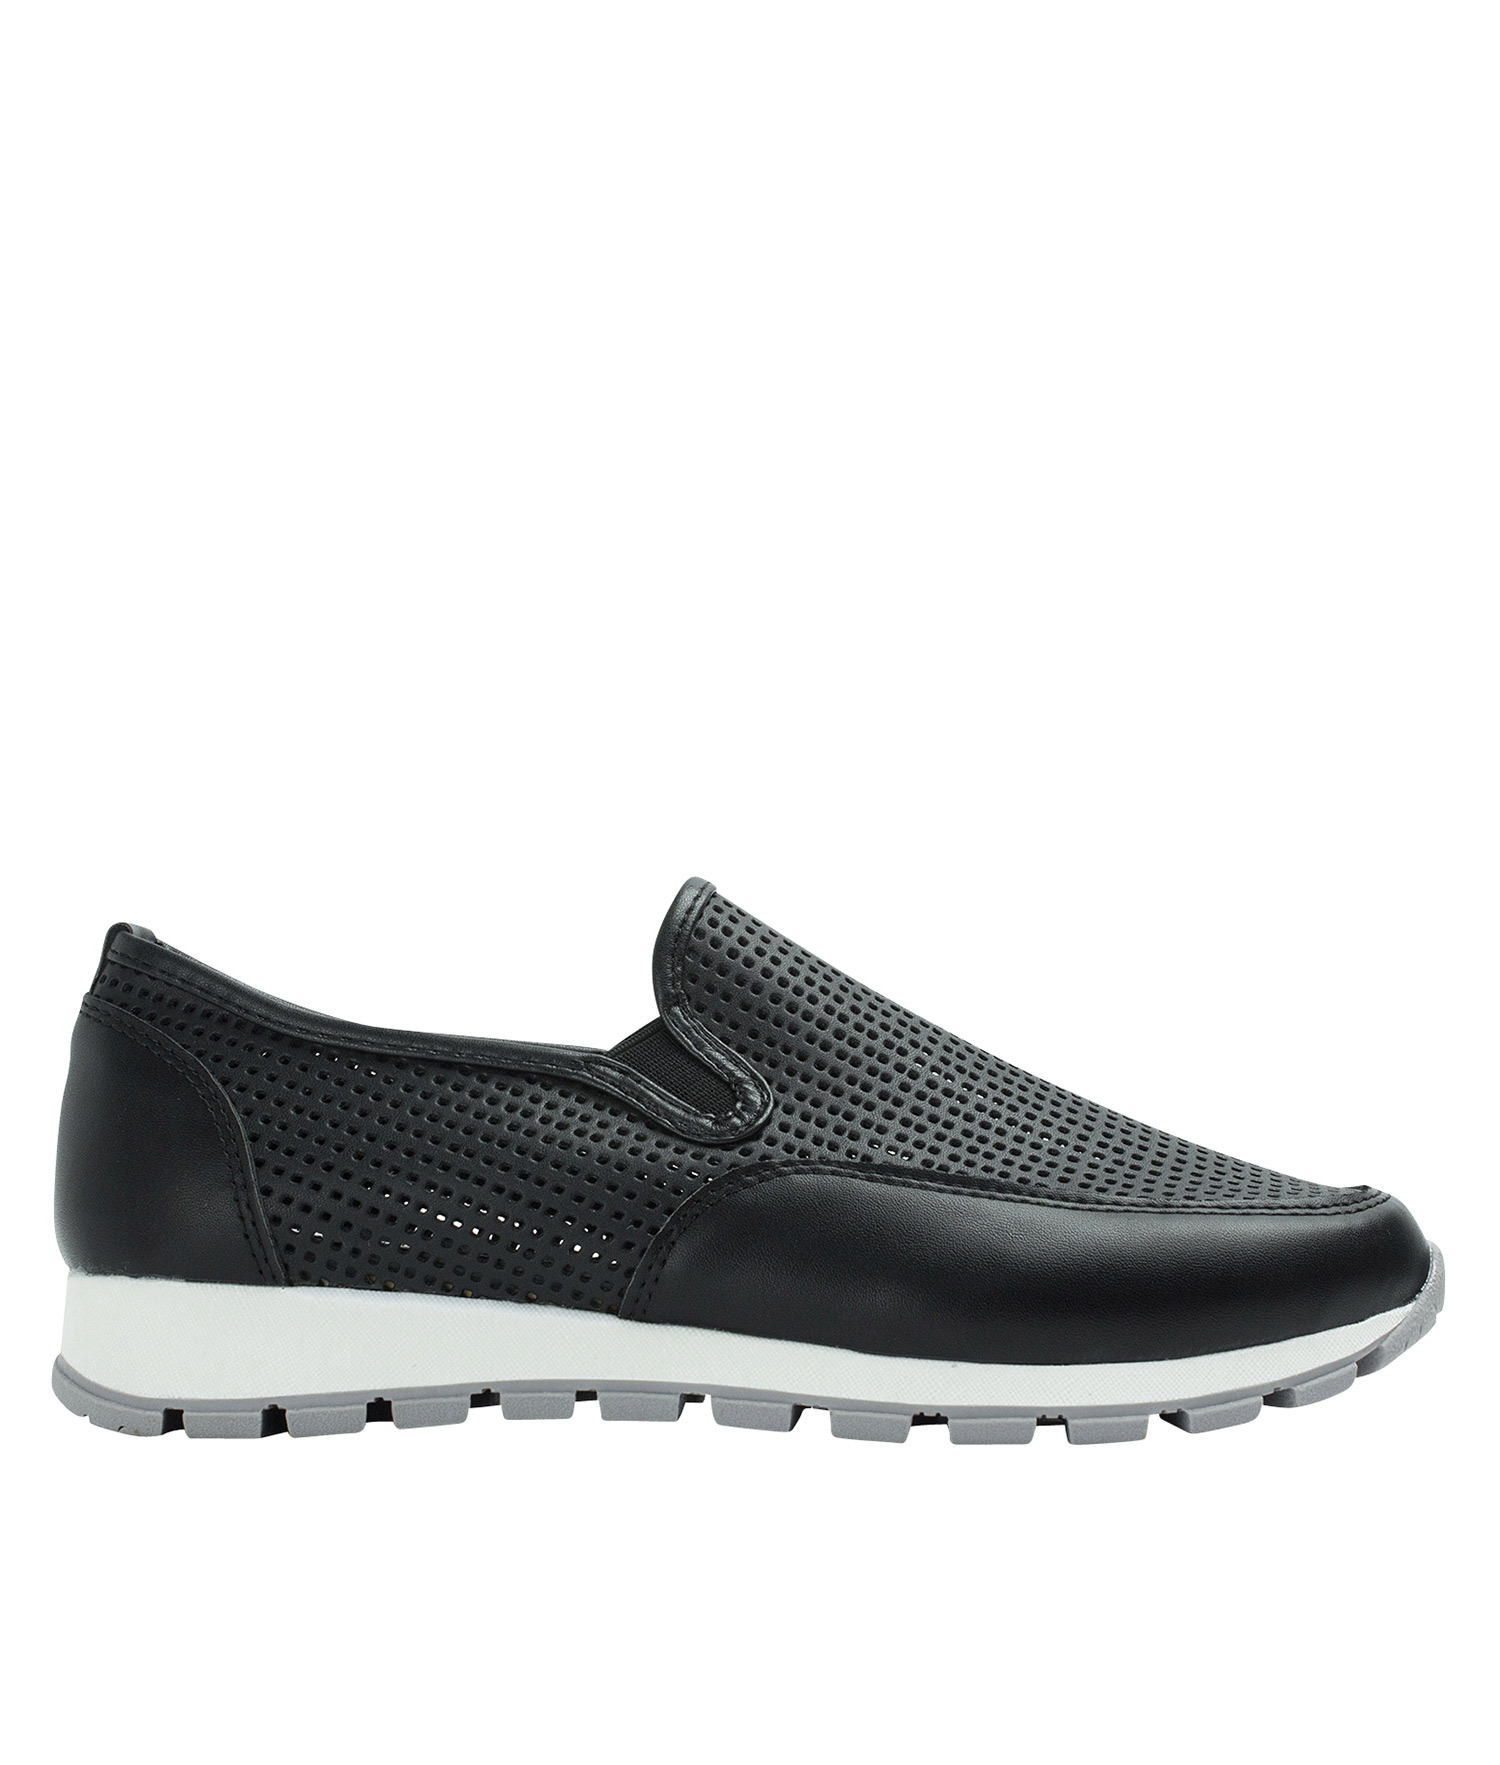 5f6bd490076a AnnaKastle Womens Perforated Slip-On Sneakers Black